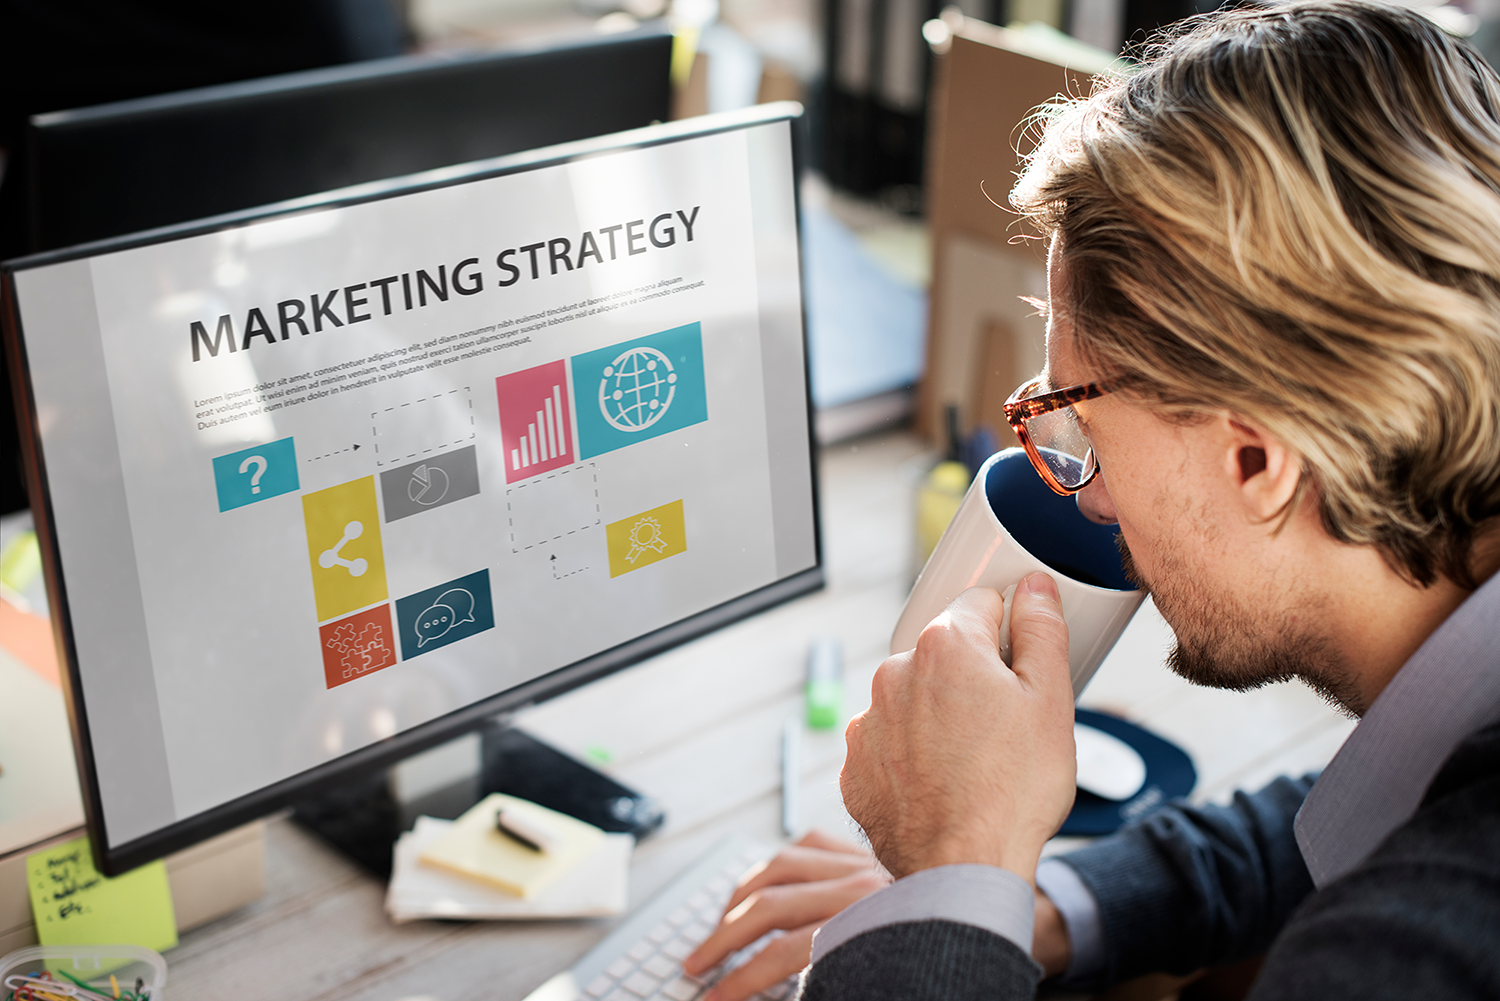 ¿Qué es el Marketing 3.0?